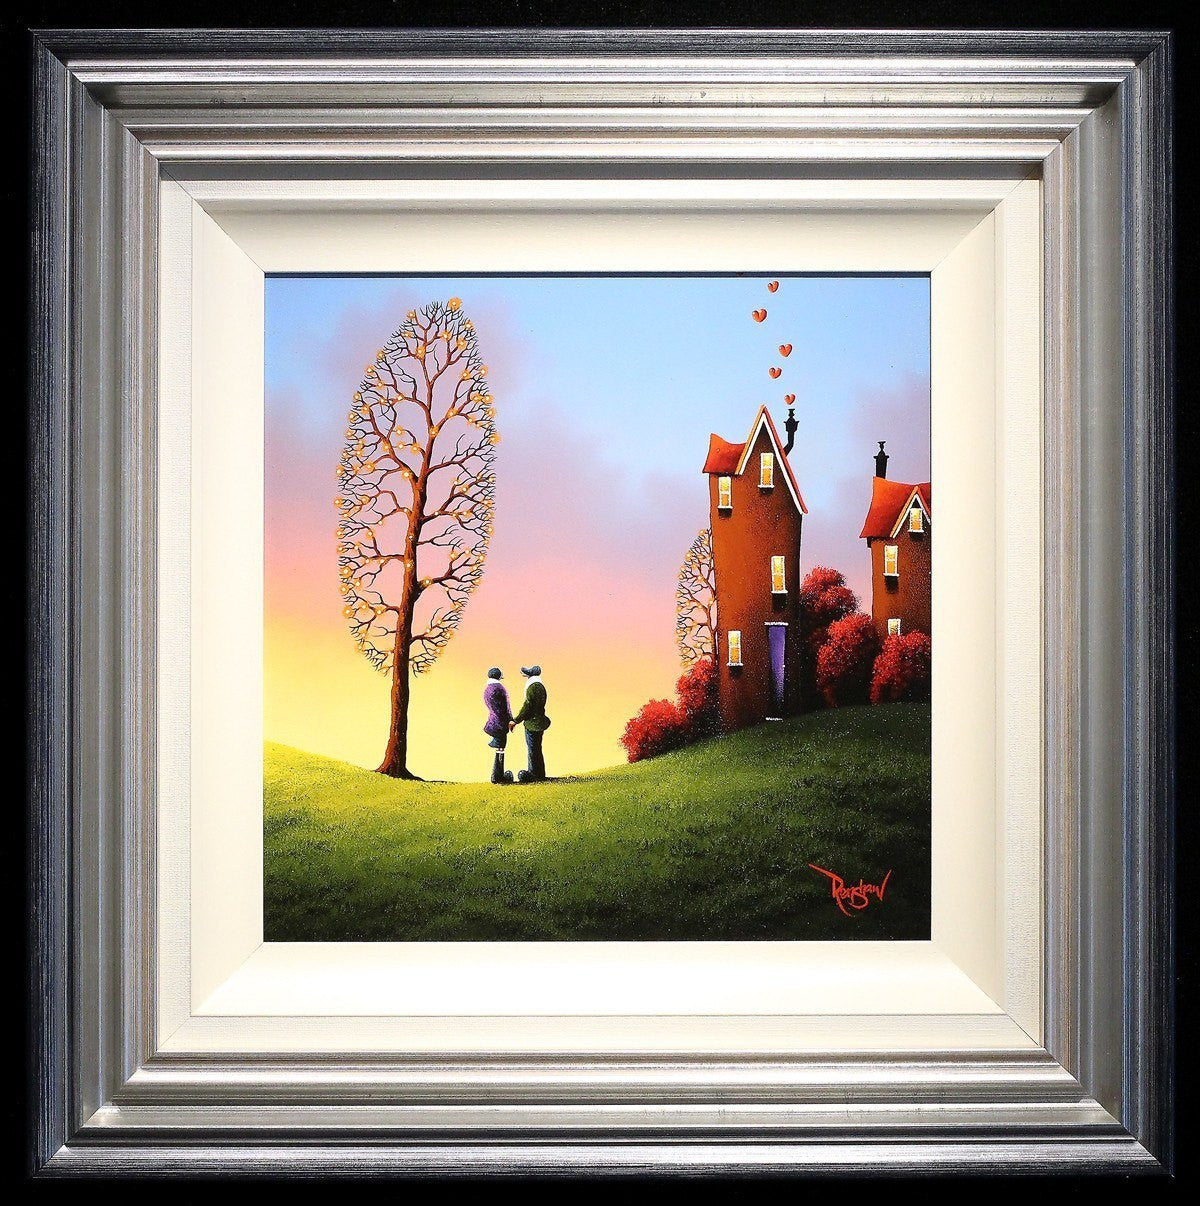 A Home Full of Love - SOLD David Renshaw